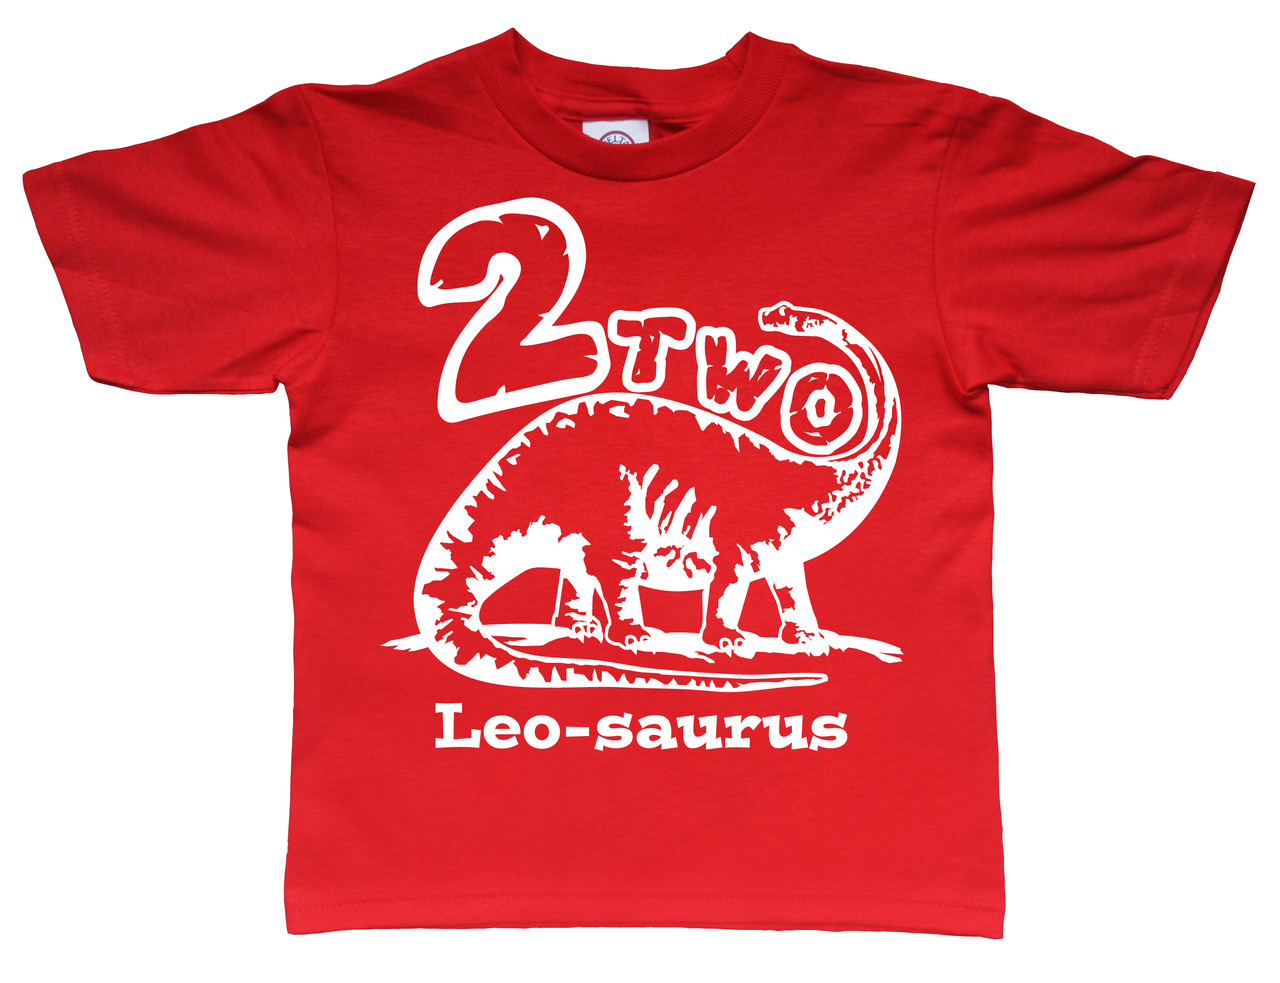 brontosaurus birthday t-shirt white printed on red tshirt